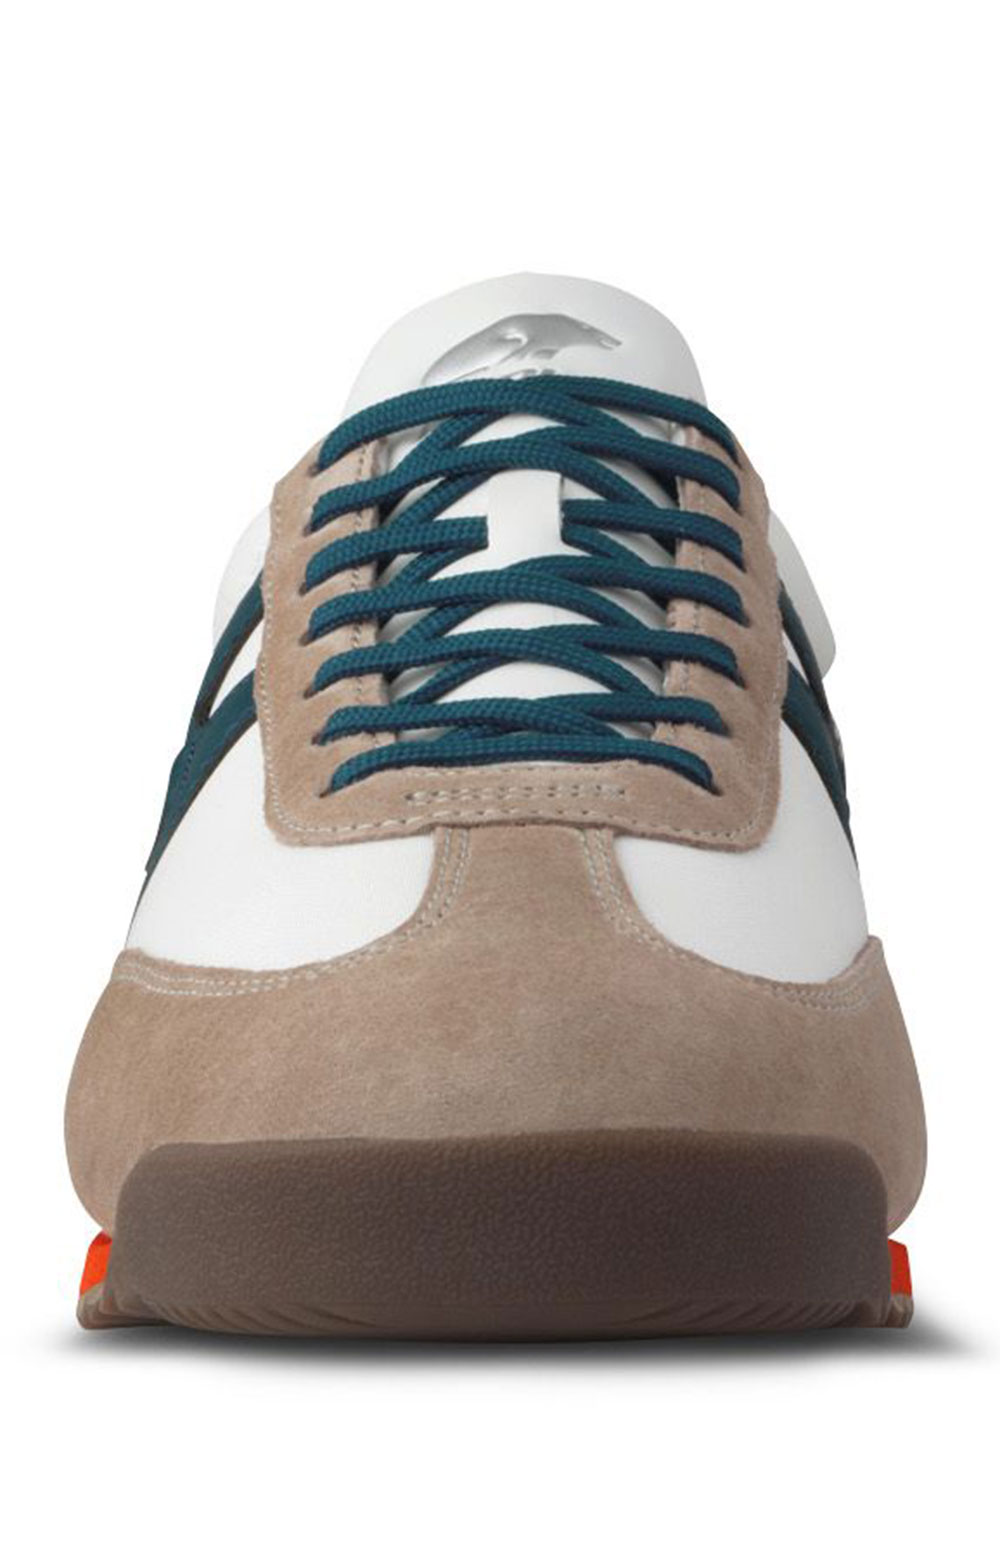 (F805032) Mestari Shoes - Peyote/Atlantic Deep  3